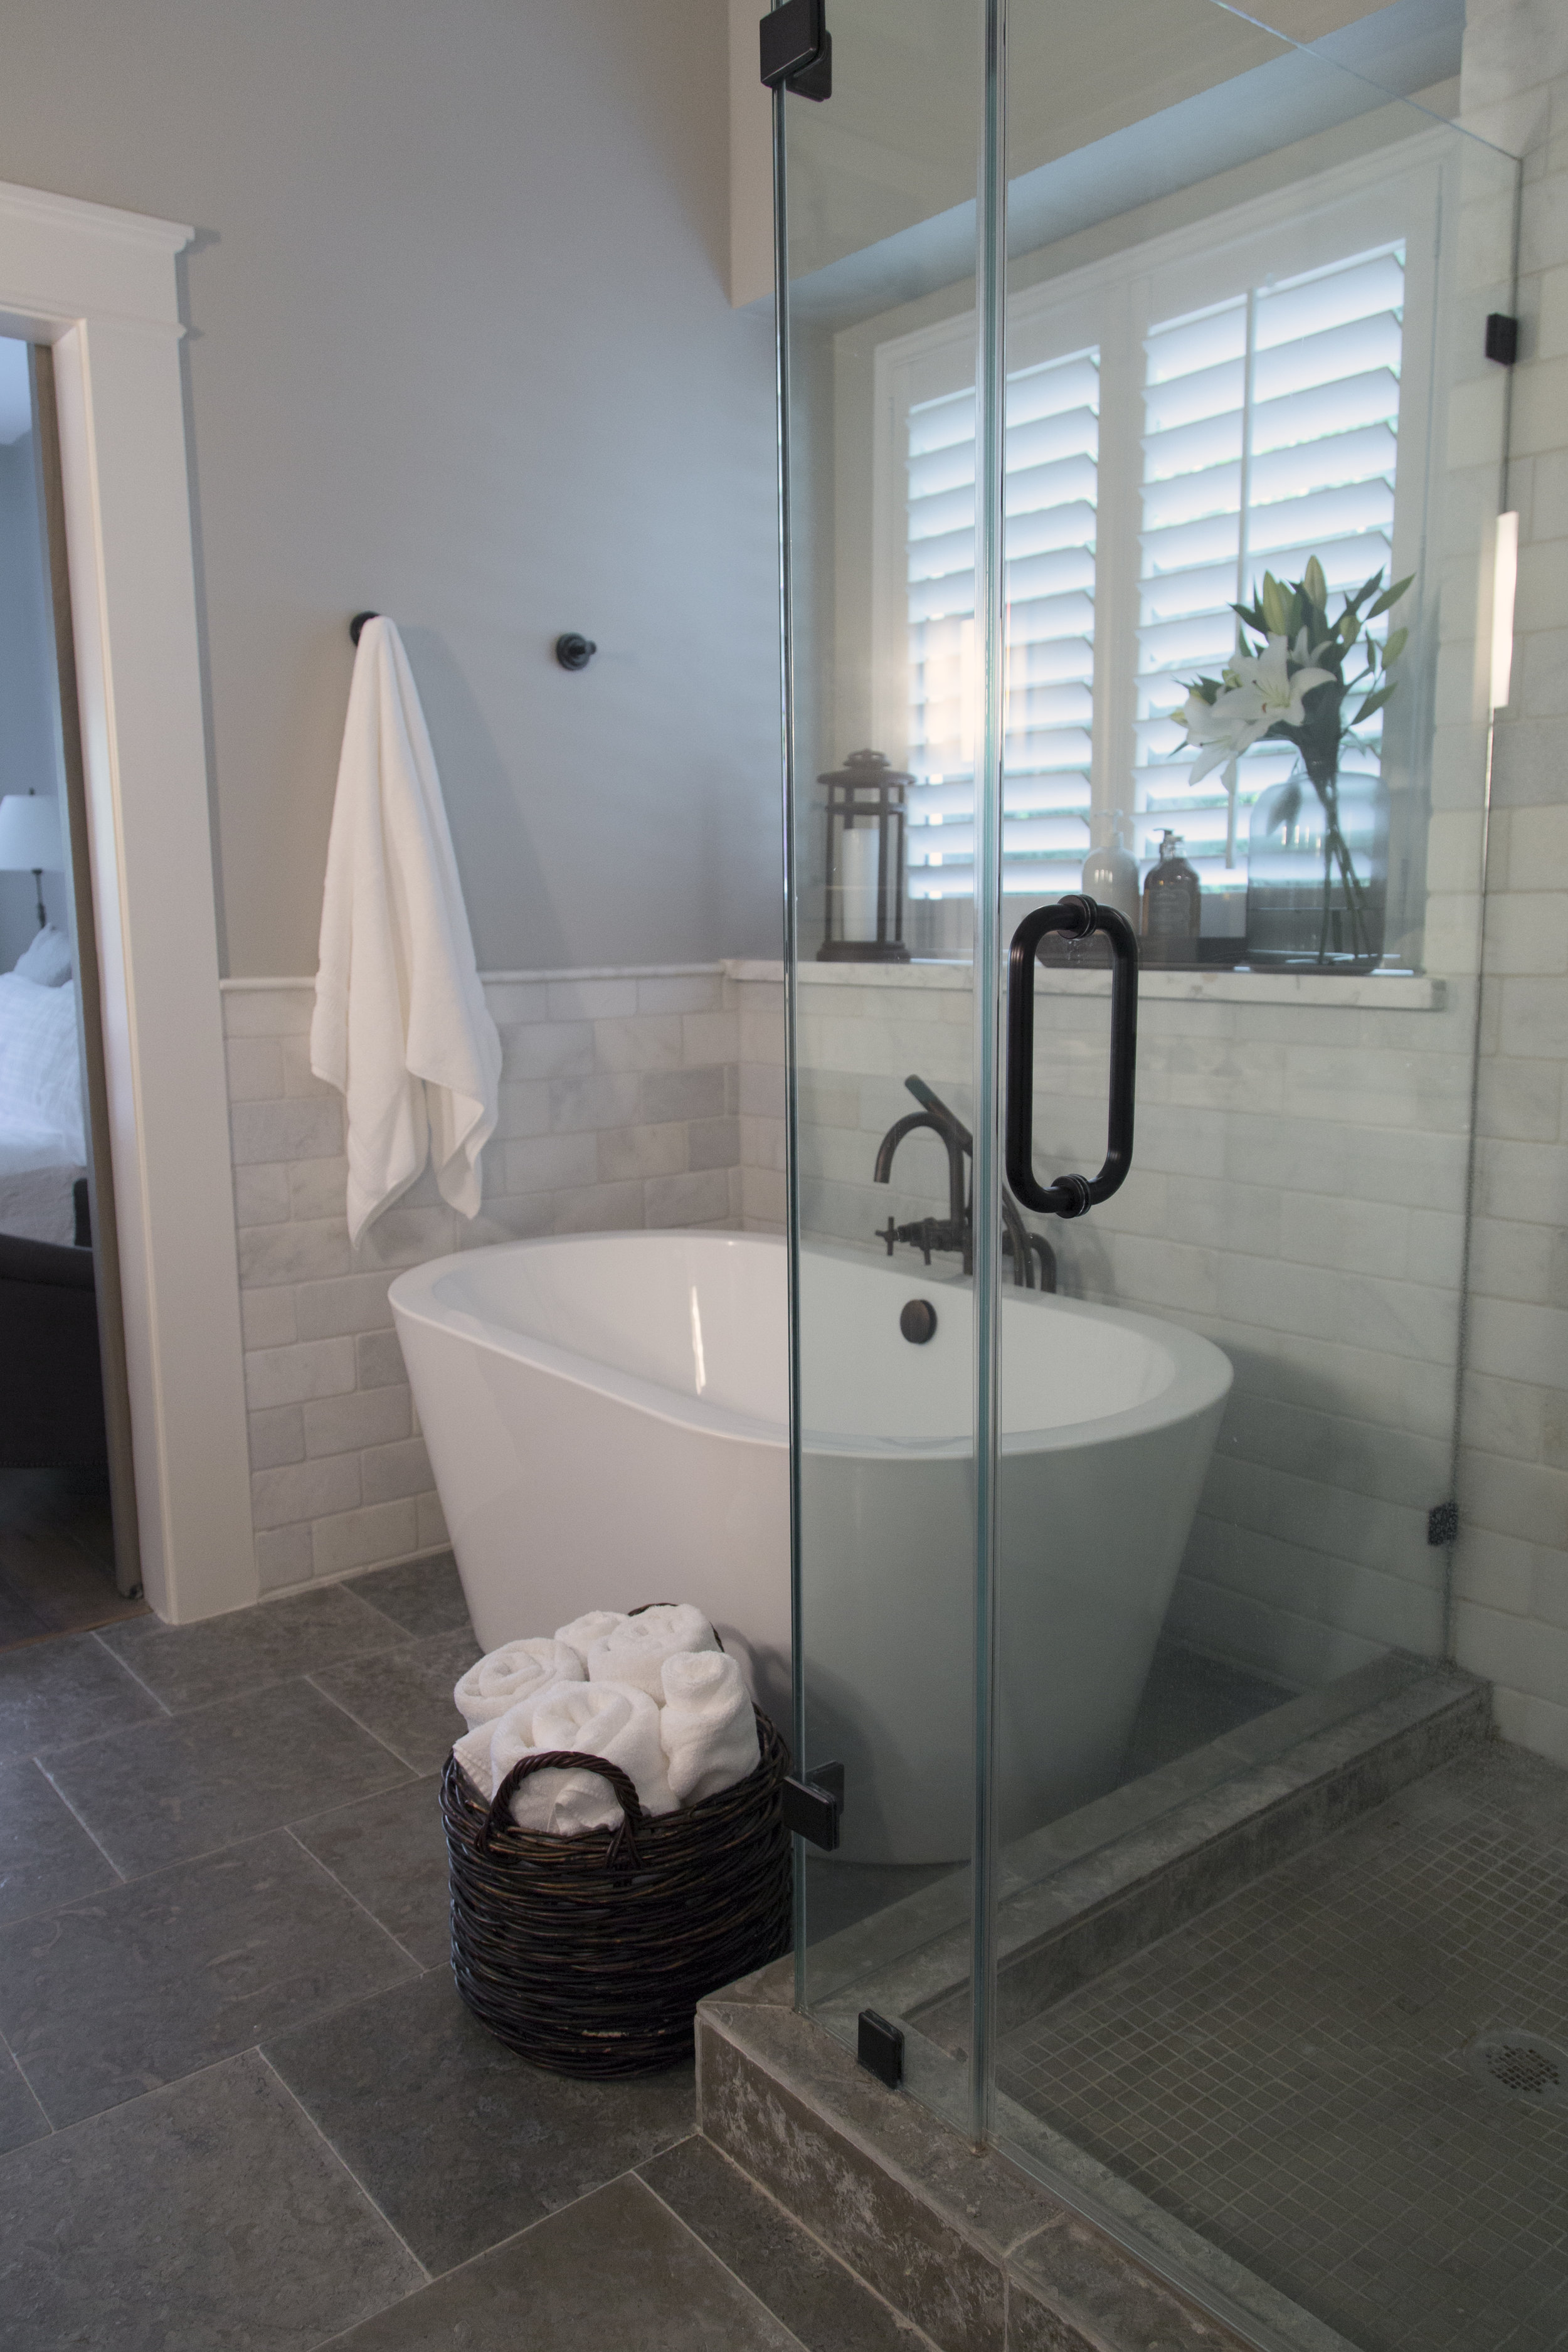 The same type limestone tile we used on the floor was used in the shower stall, just in a smaller size, to get a continuous look and expand the look of this bathroom. Wall tile flows from shower walls to surround tub as well. Designer Carla Aston, Photo by Tori Aston